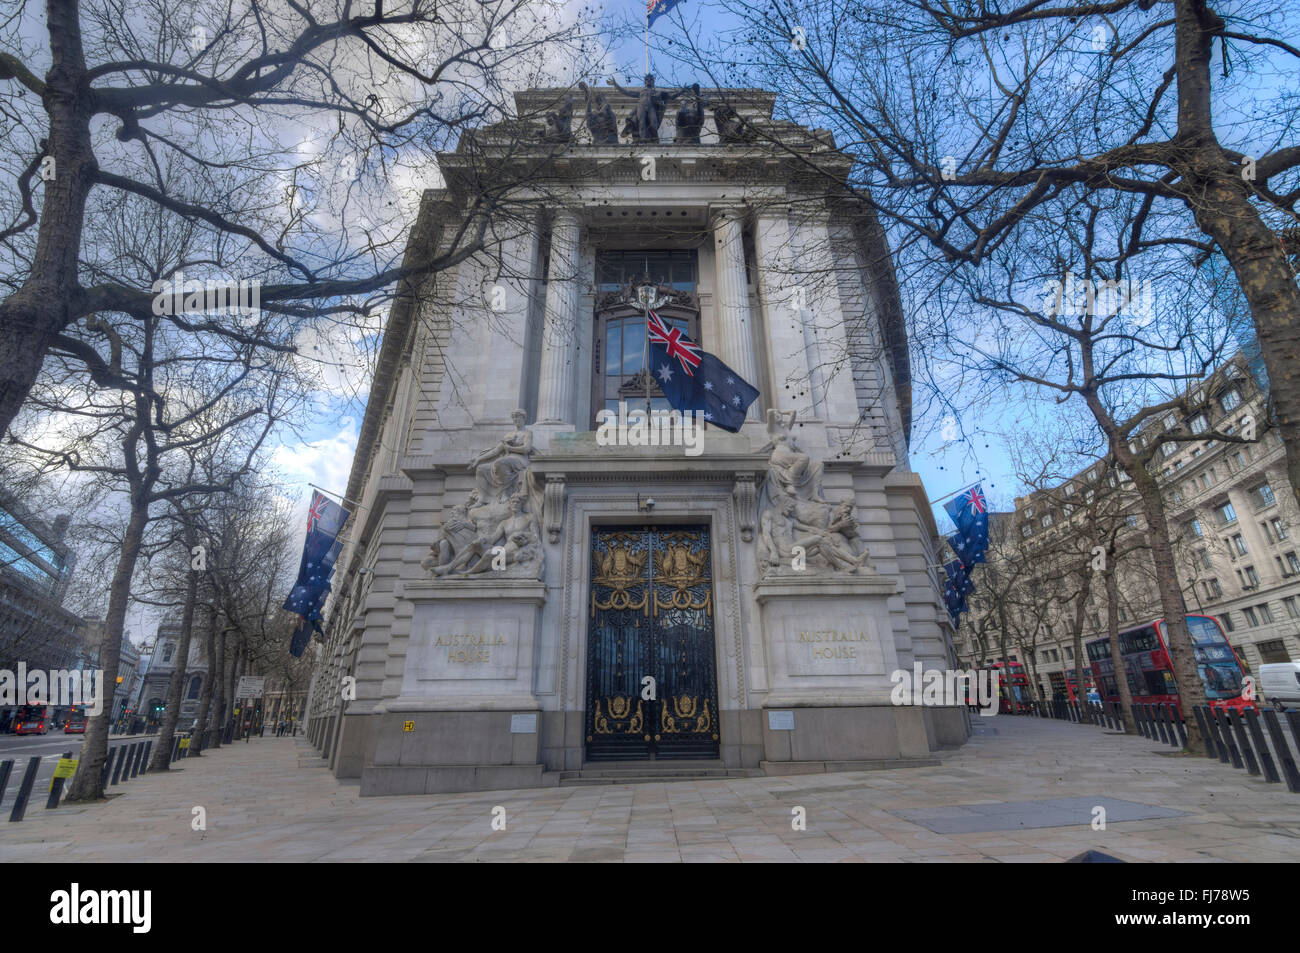 Australian Embassy Australian Embassy London Stock Photo 97276289 Alamy